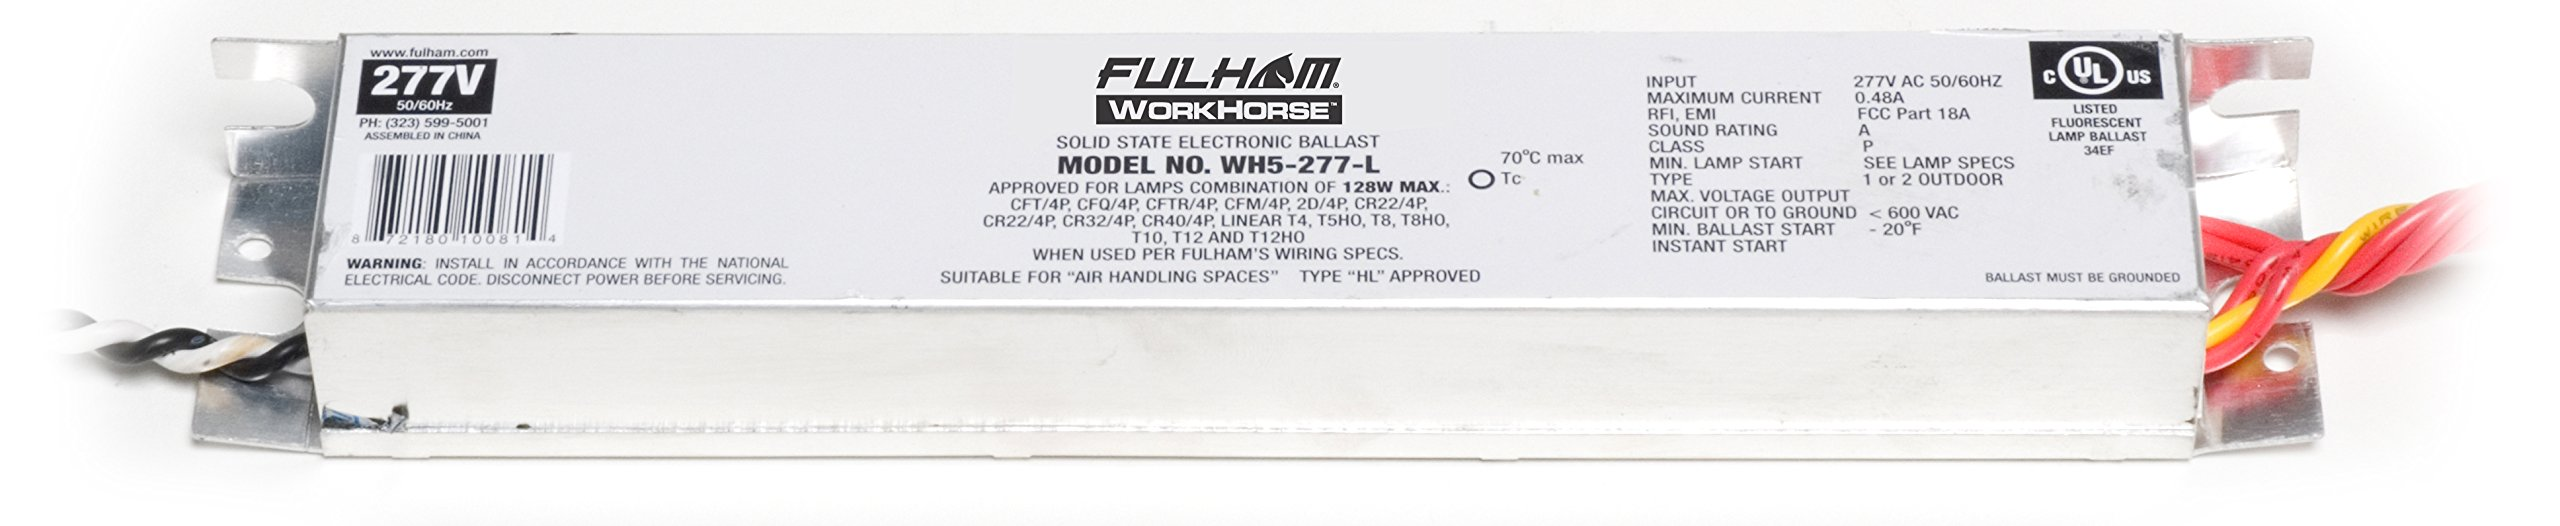 Fulham WH5-277-L WorkHorse Adaptable Ballast